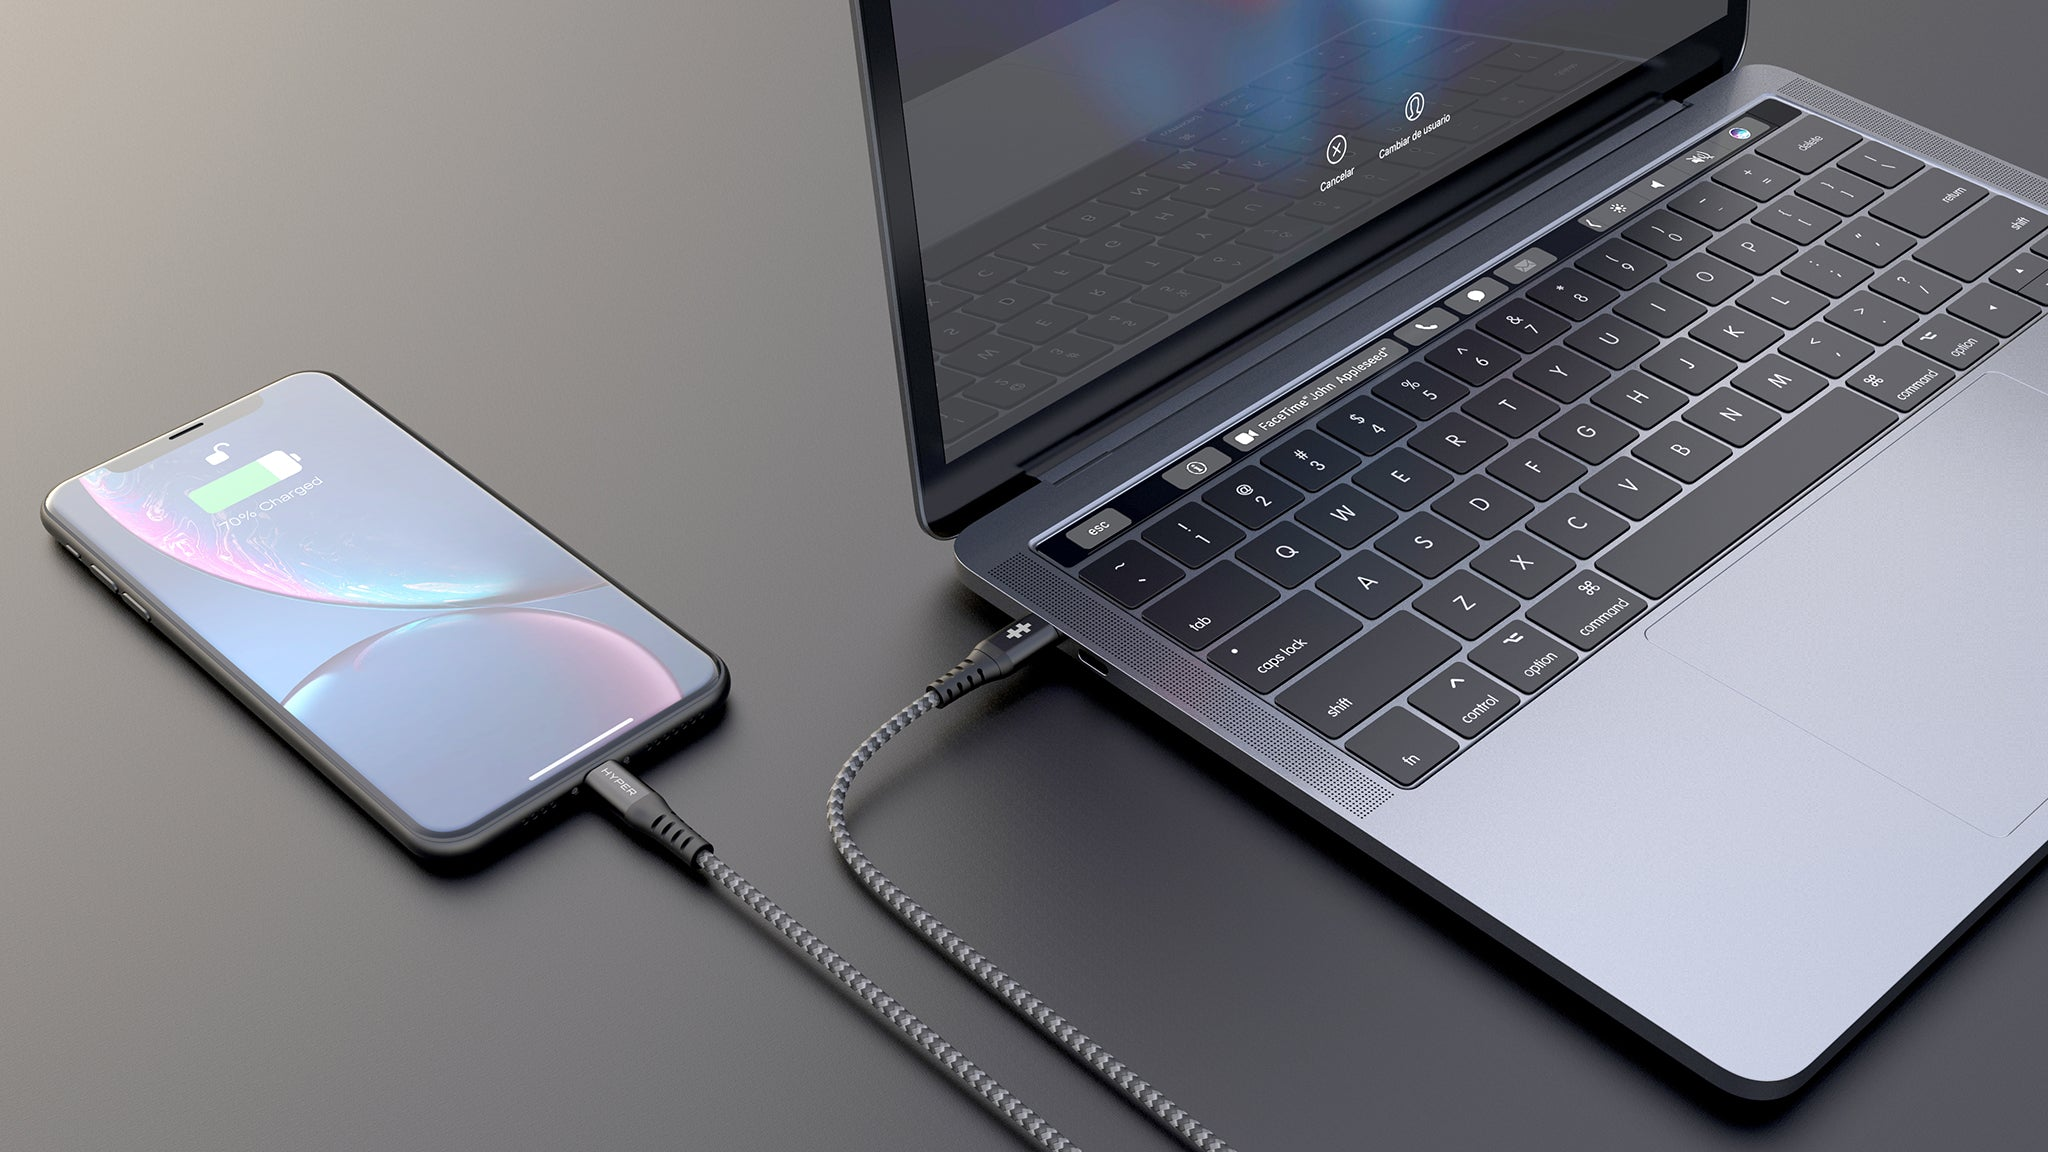 HyperDrive USB-C + Lightning Cables